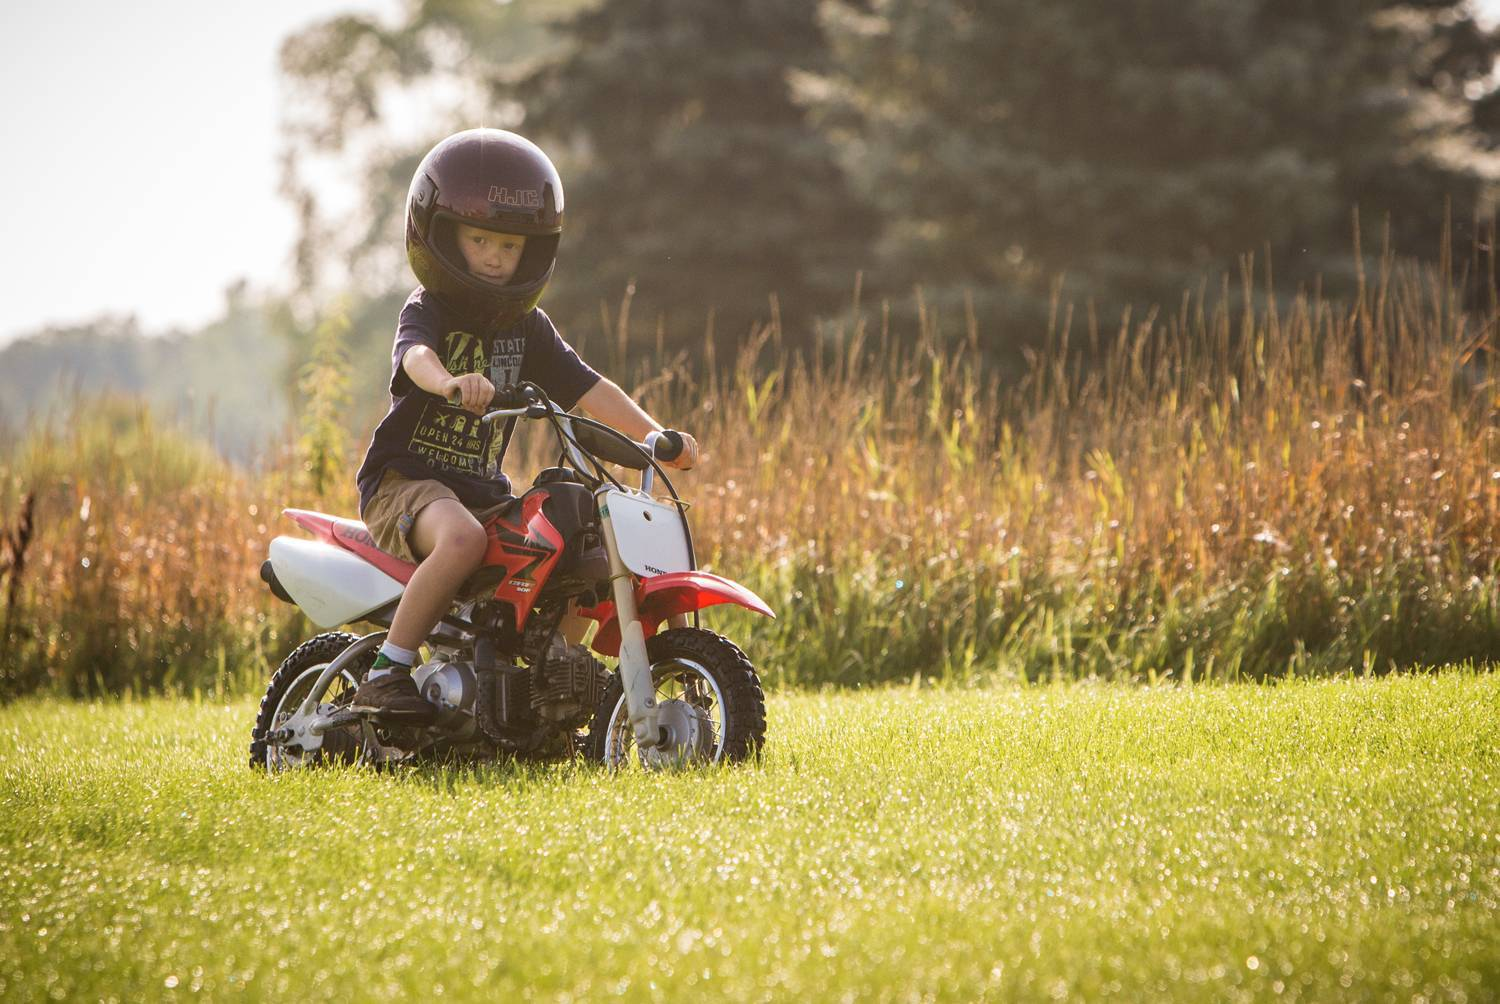 Collin, pictured here, and Simon love playing outside on their dirt bikes.